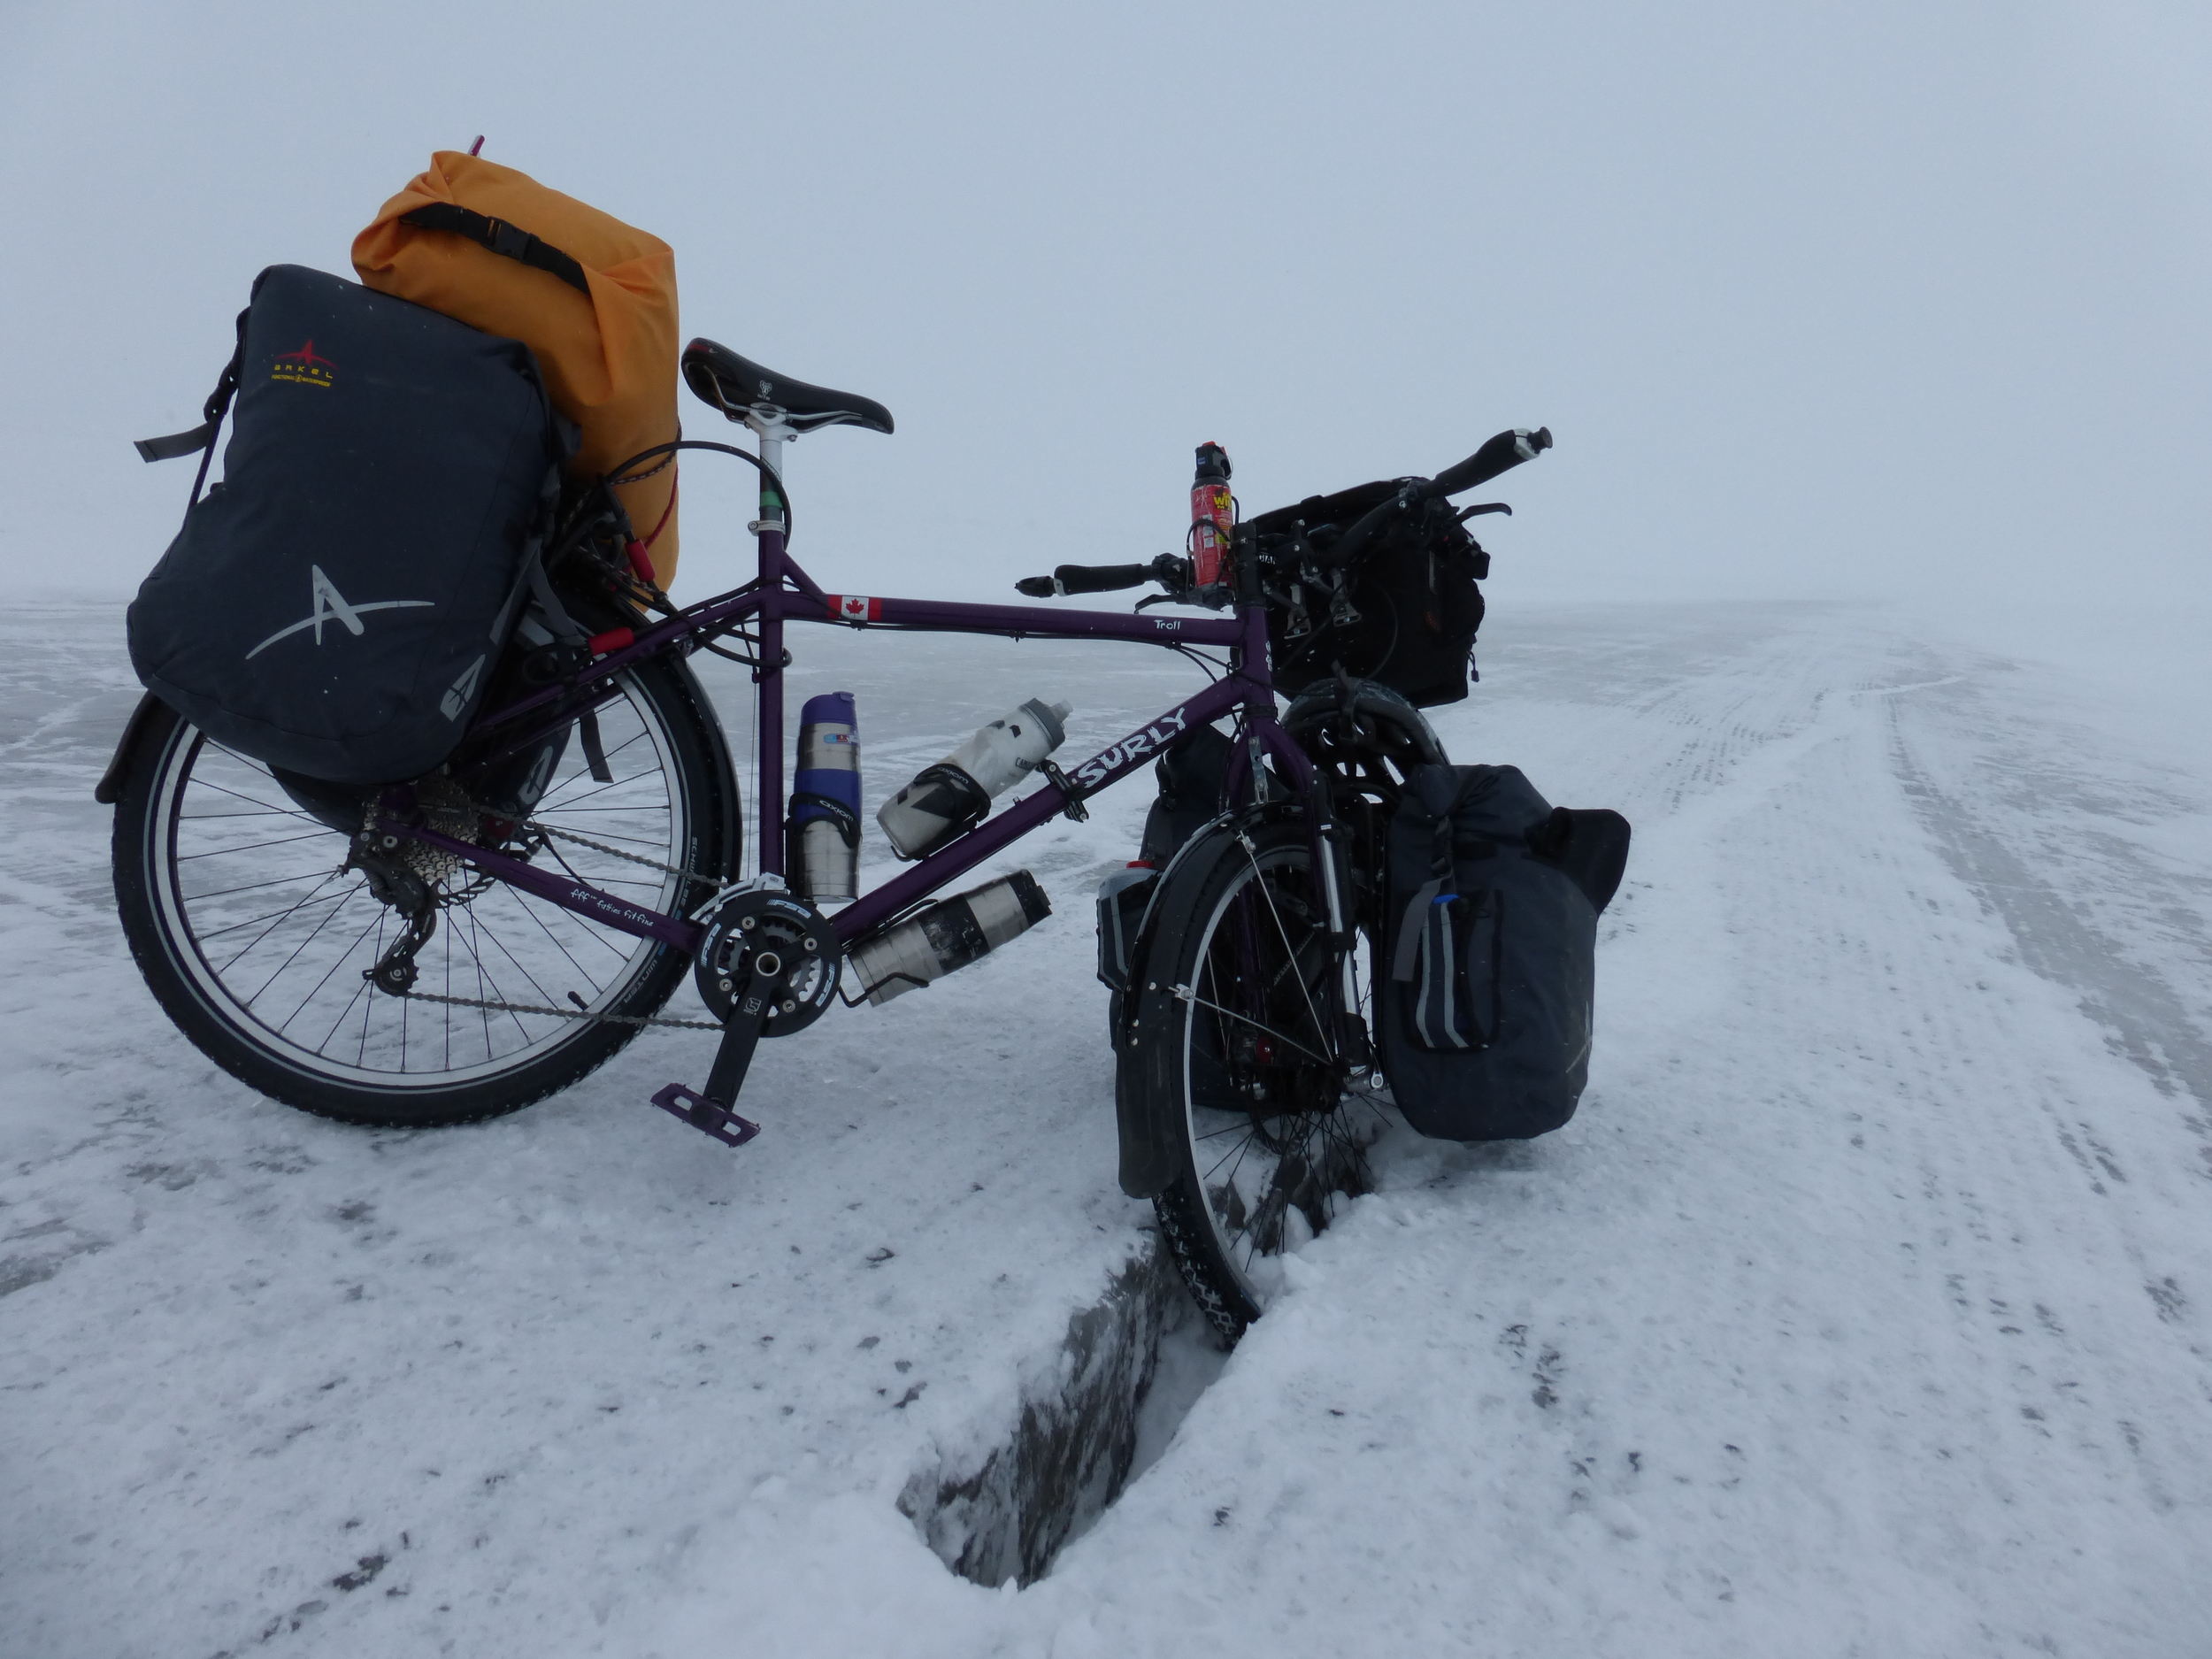 One of the biggest challenges was the ice road - at -20C 2 cracks ran along the road zig-zagging and I had to constantly cross them. I fell over 30 times in the two days I was there (landing on the overloaded panniers most of the time)